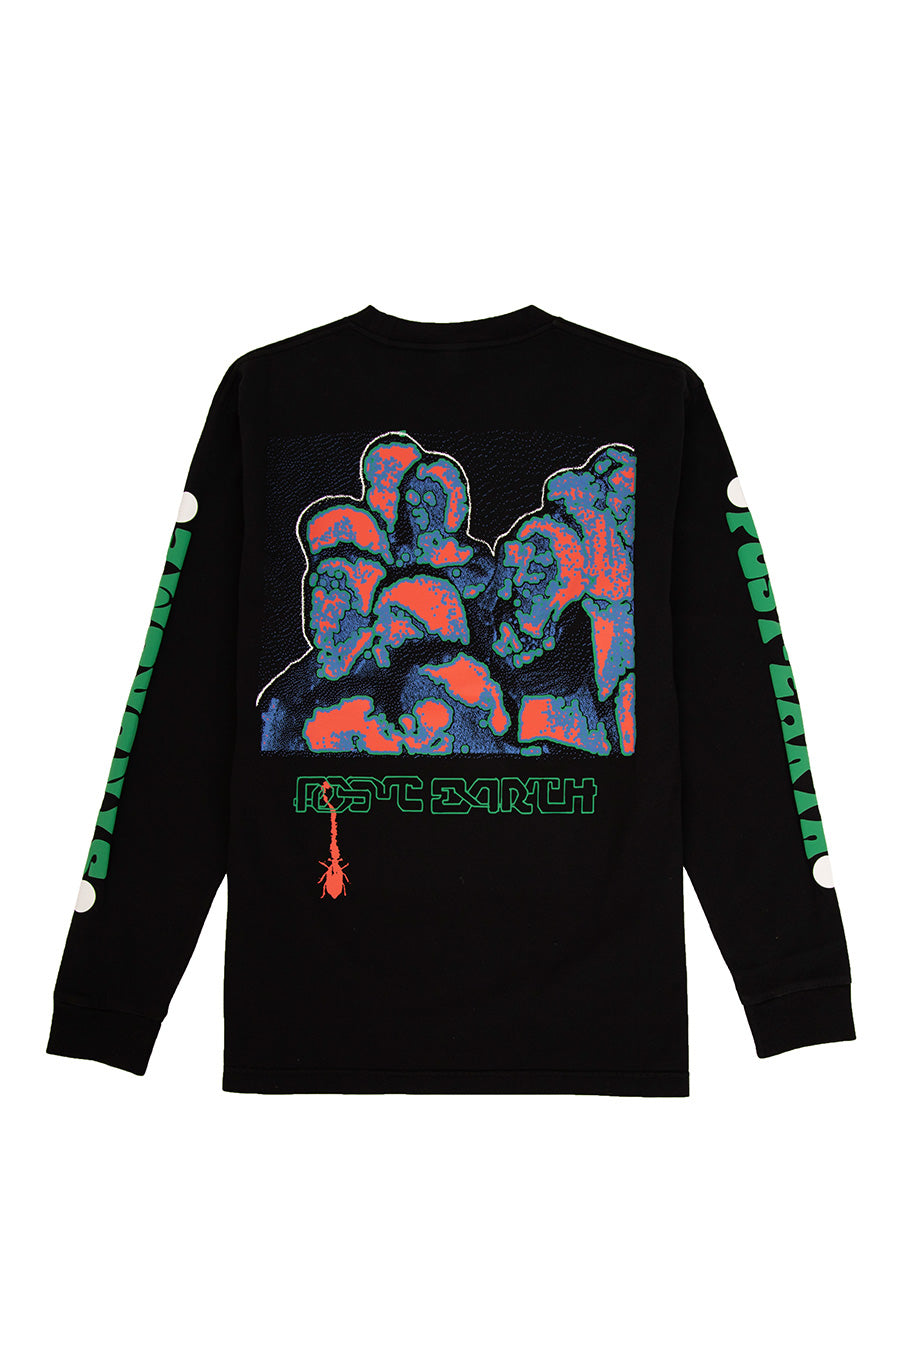 Brain Dead - Black Post Earth Syndrome Long Sleeve T-Shirt | 1032 SPACE